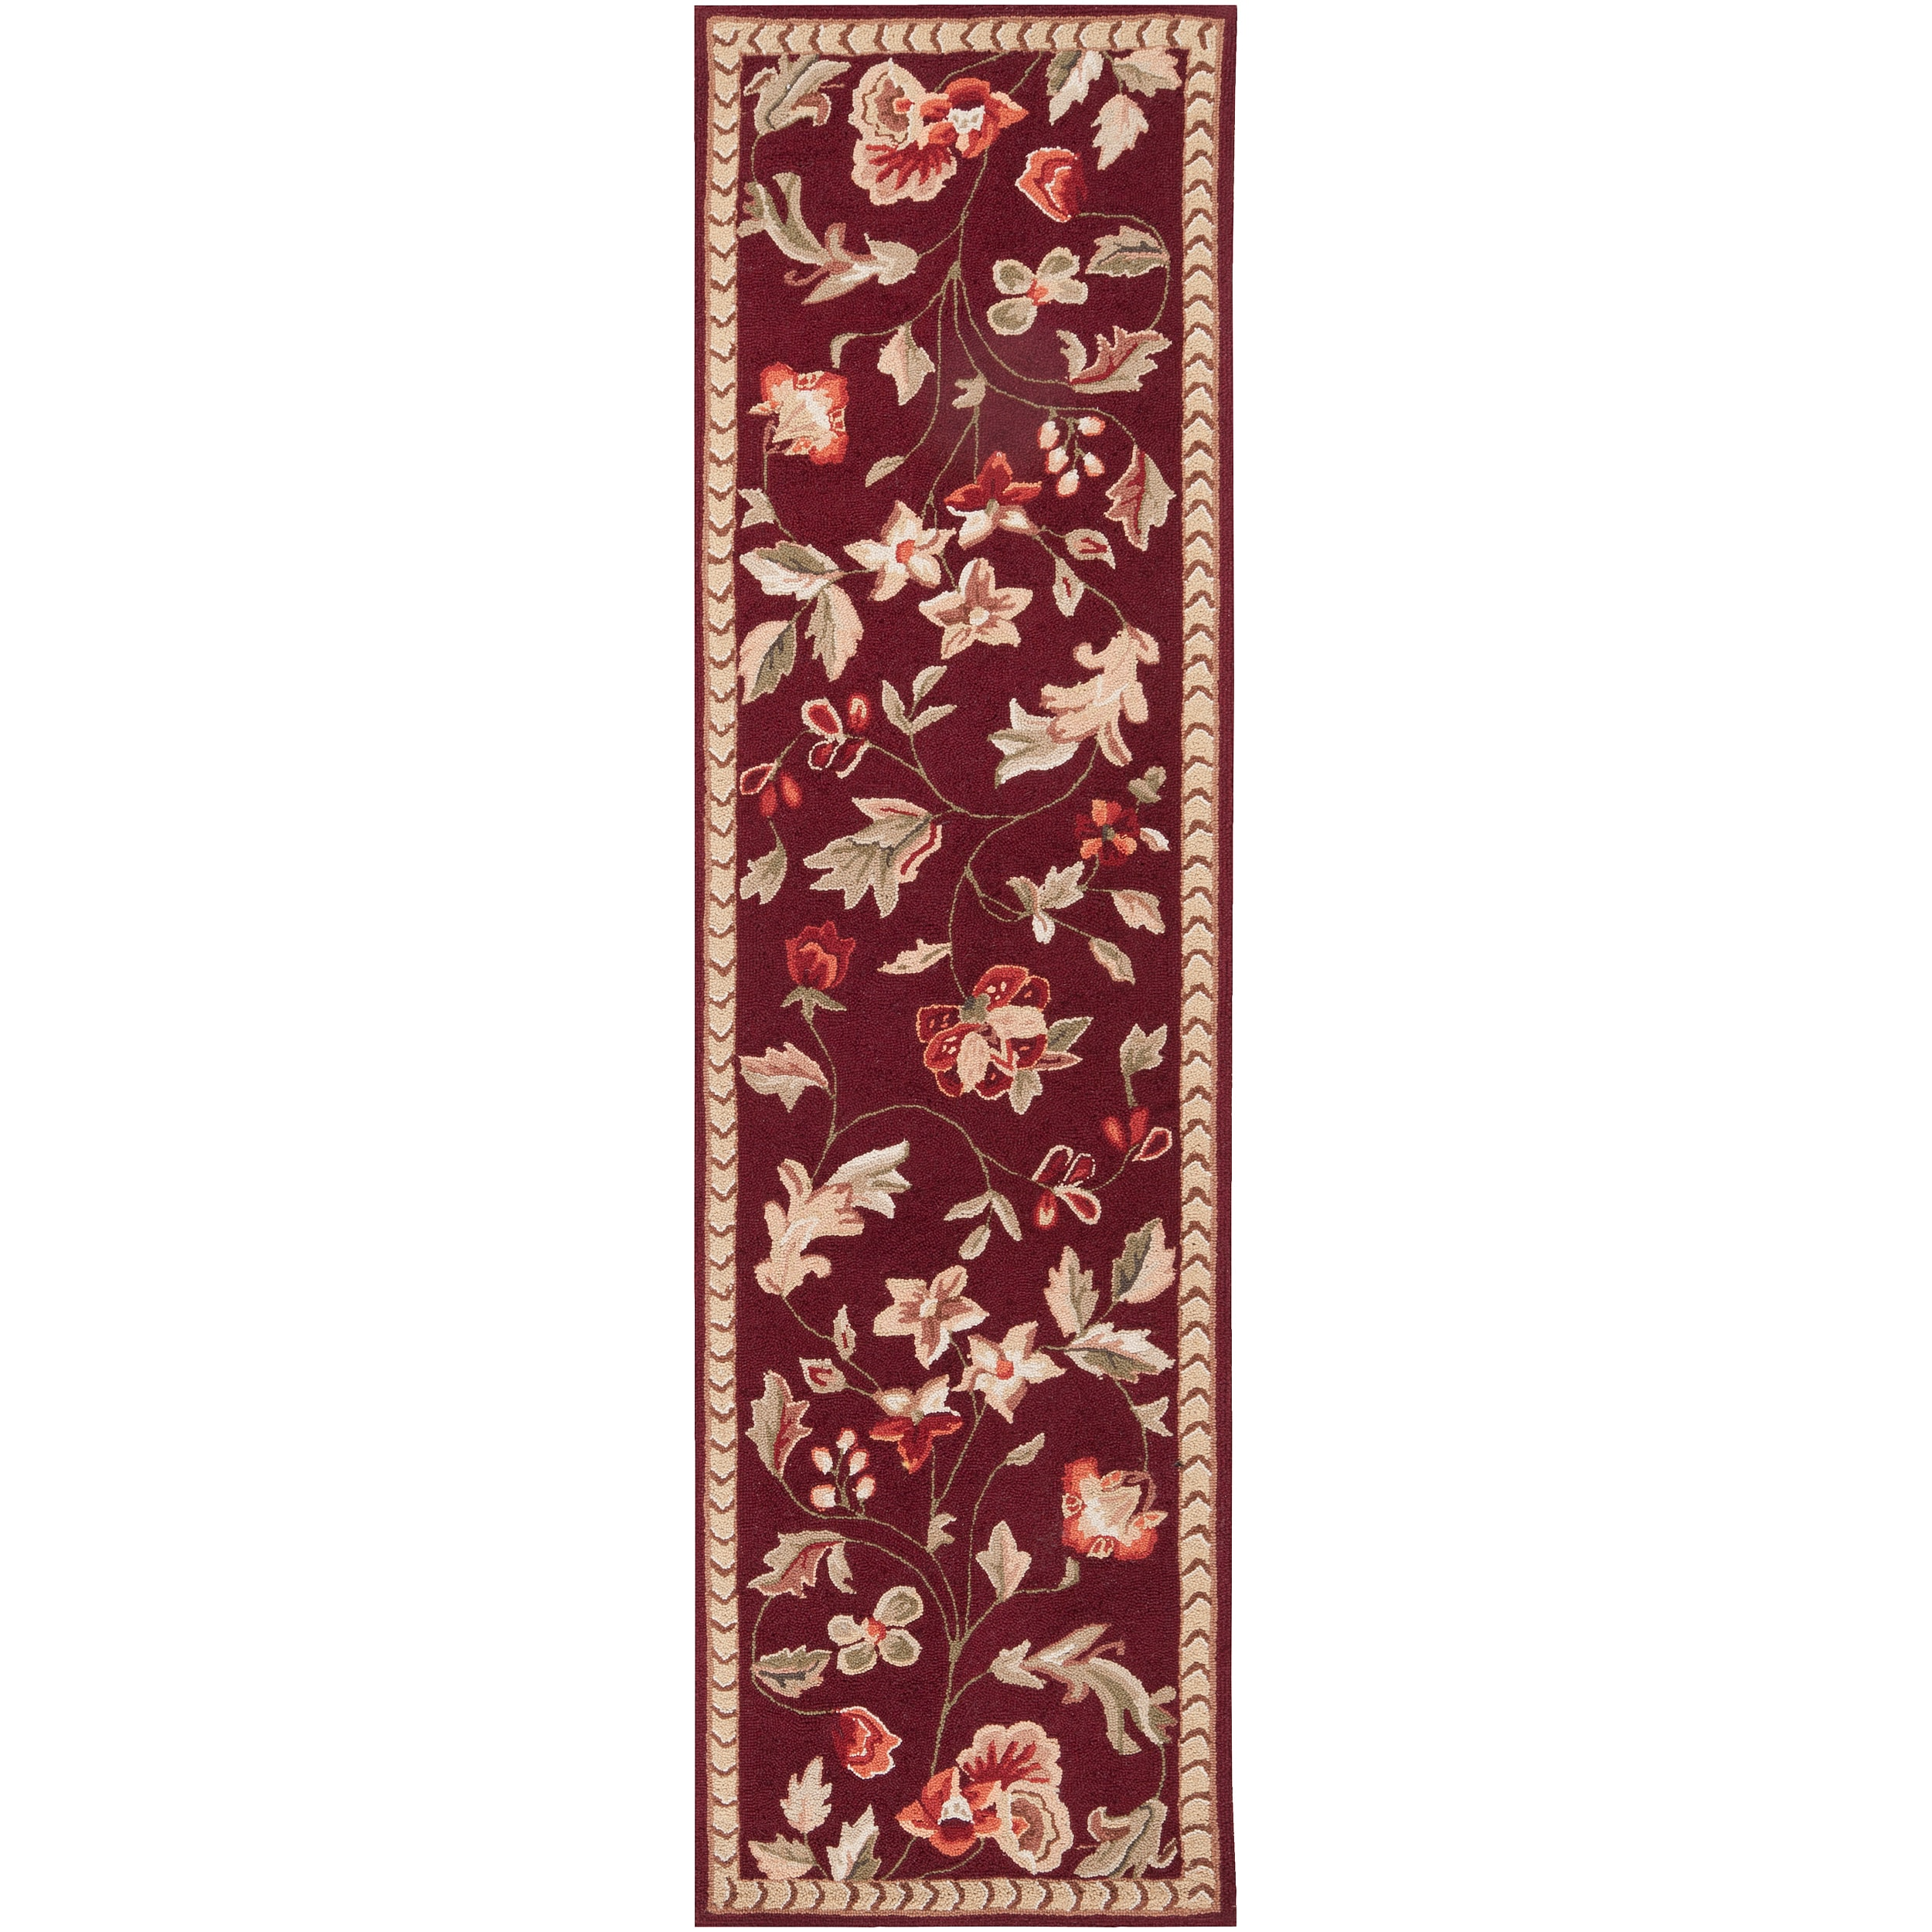 Hand-hooked Multicolored Flaude Wool Rug (2'6 x 4')